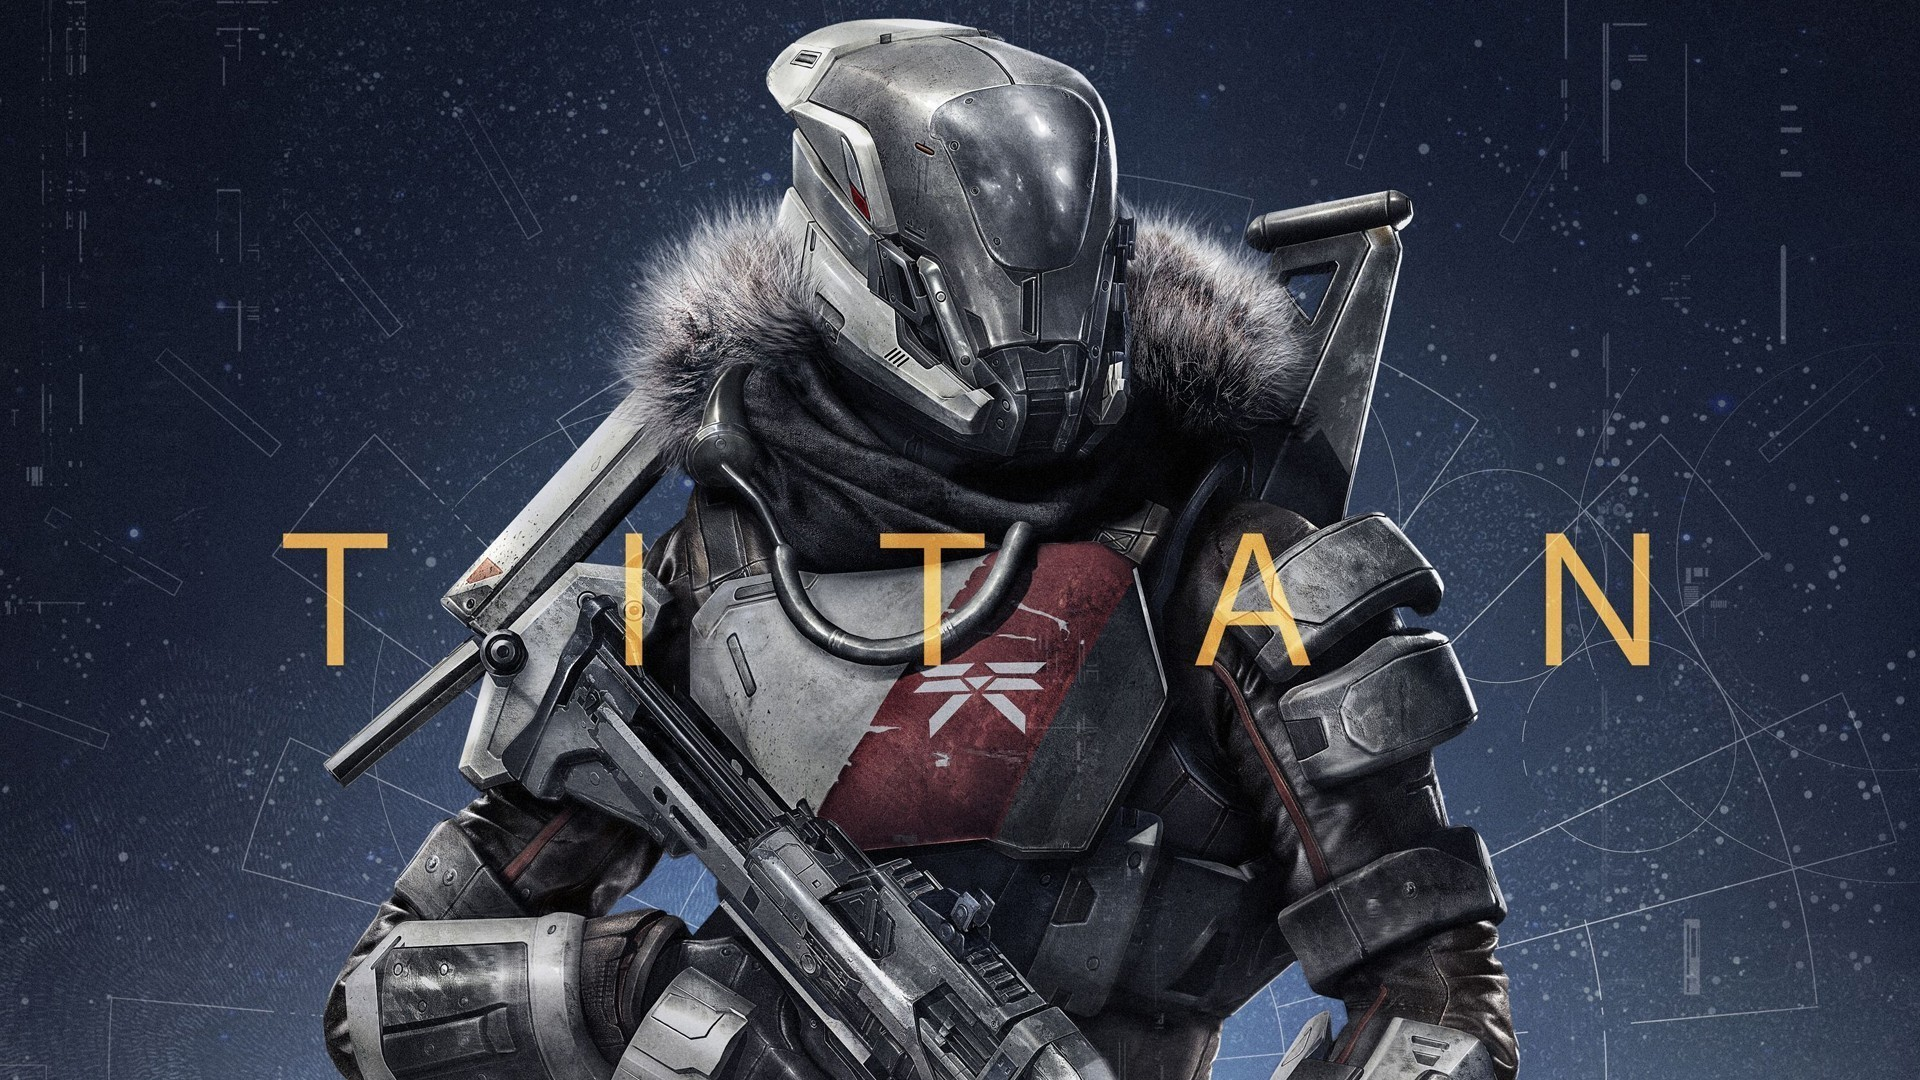 Titan class from the game destiny